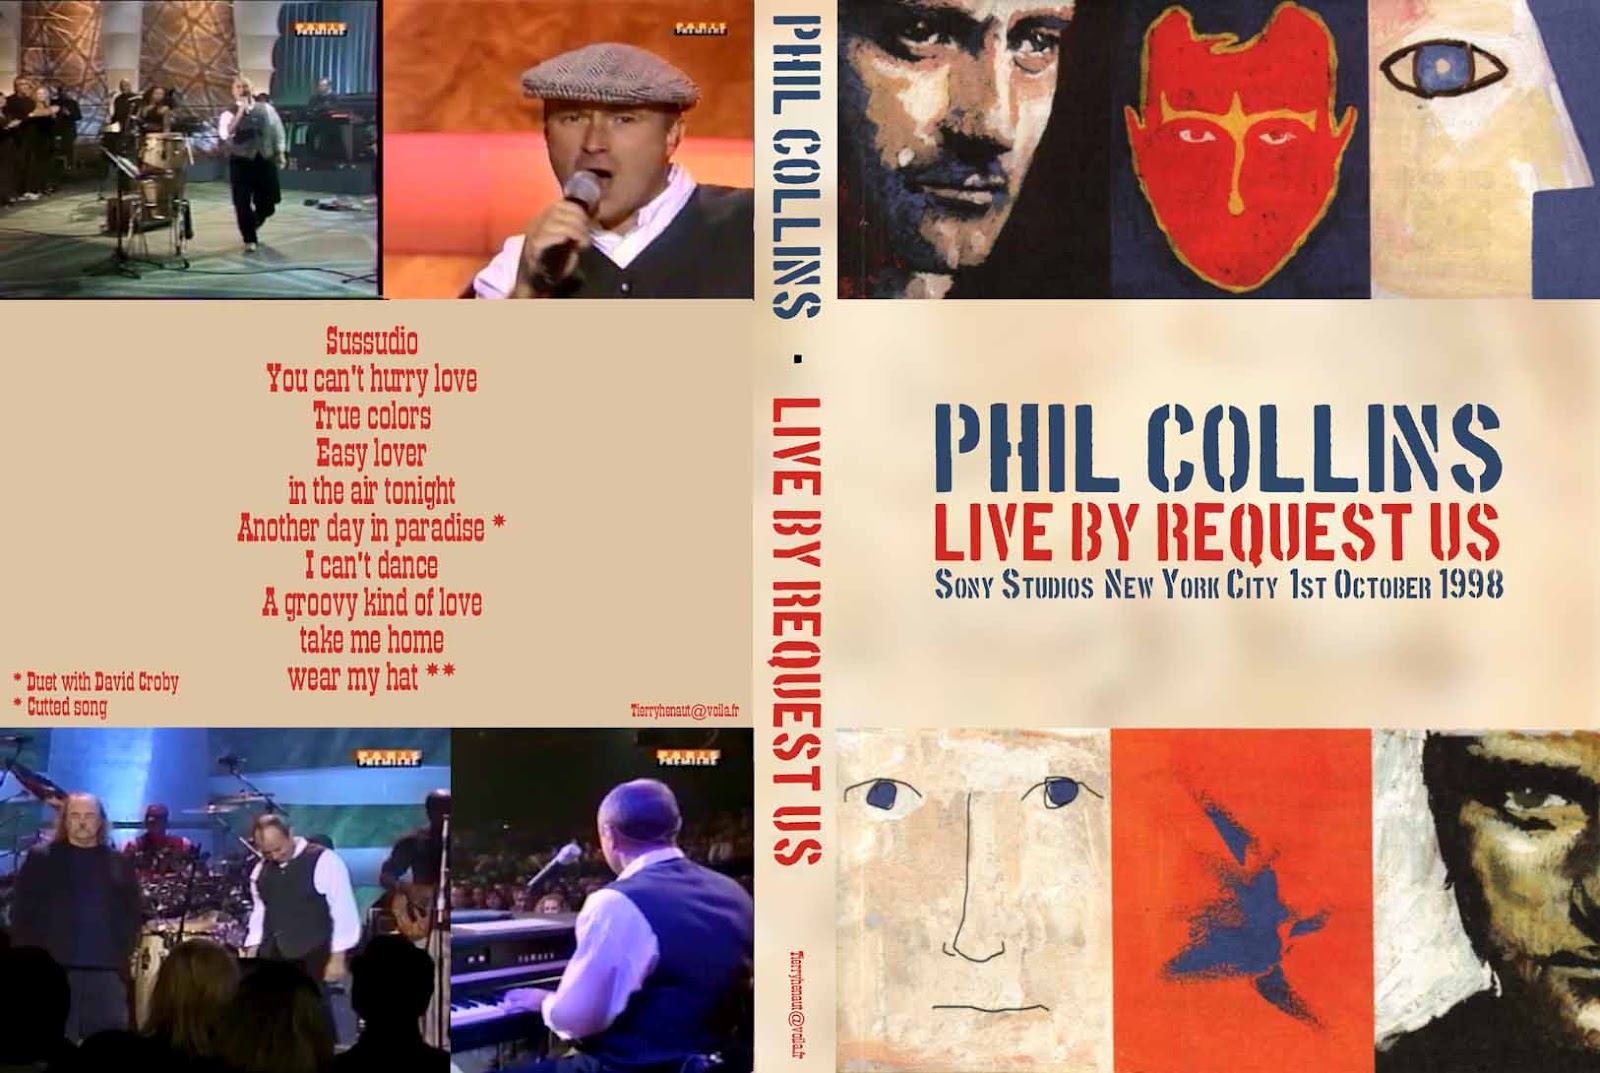 Phil collins peter gabriel take me home album picture.